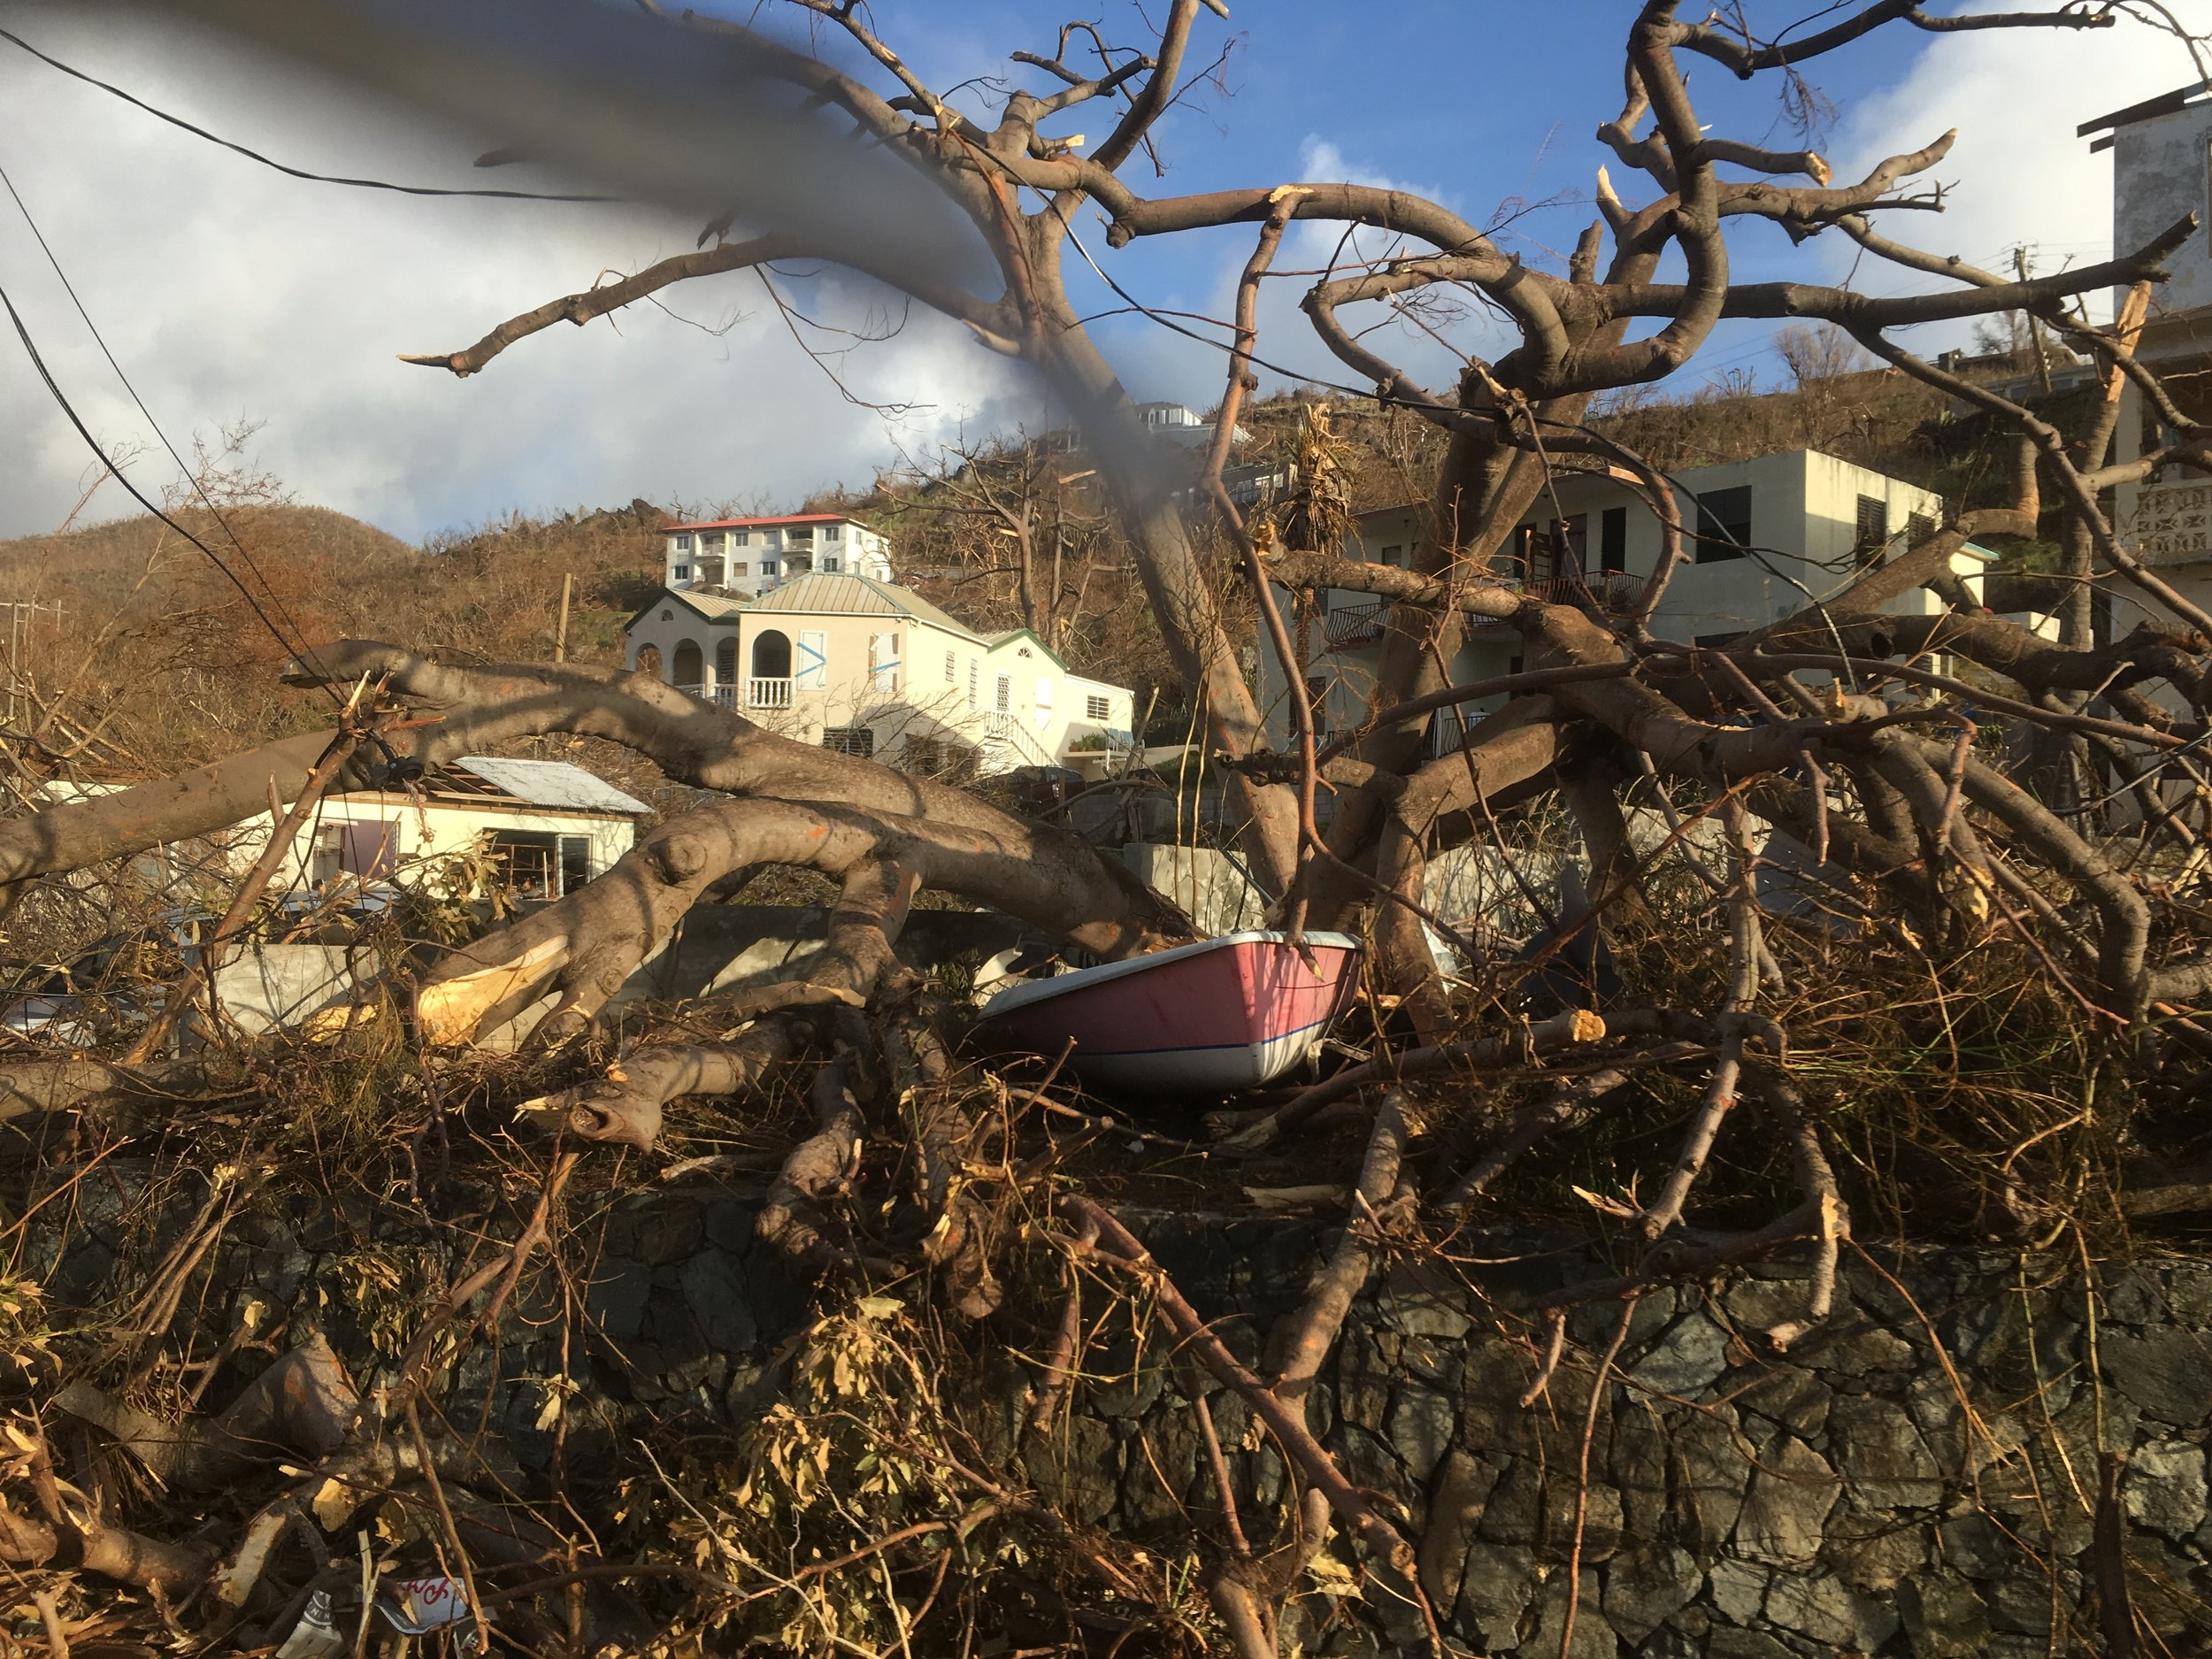 Hurricane damage on Tortola was already extensive before Hurricane Maria approached.